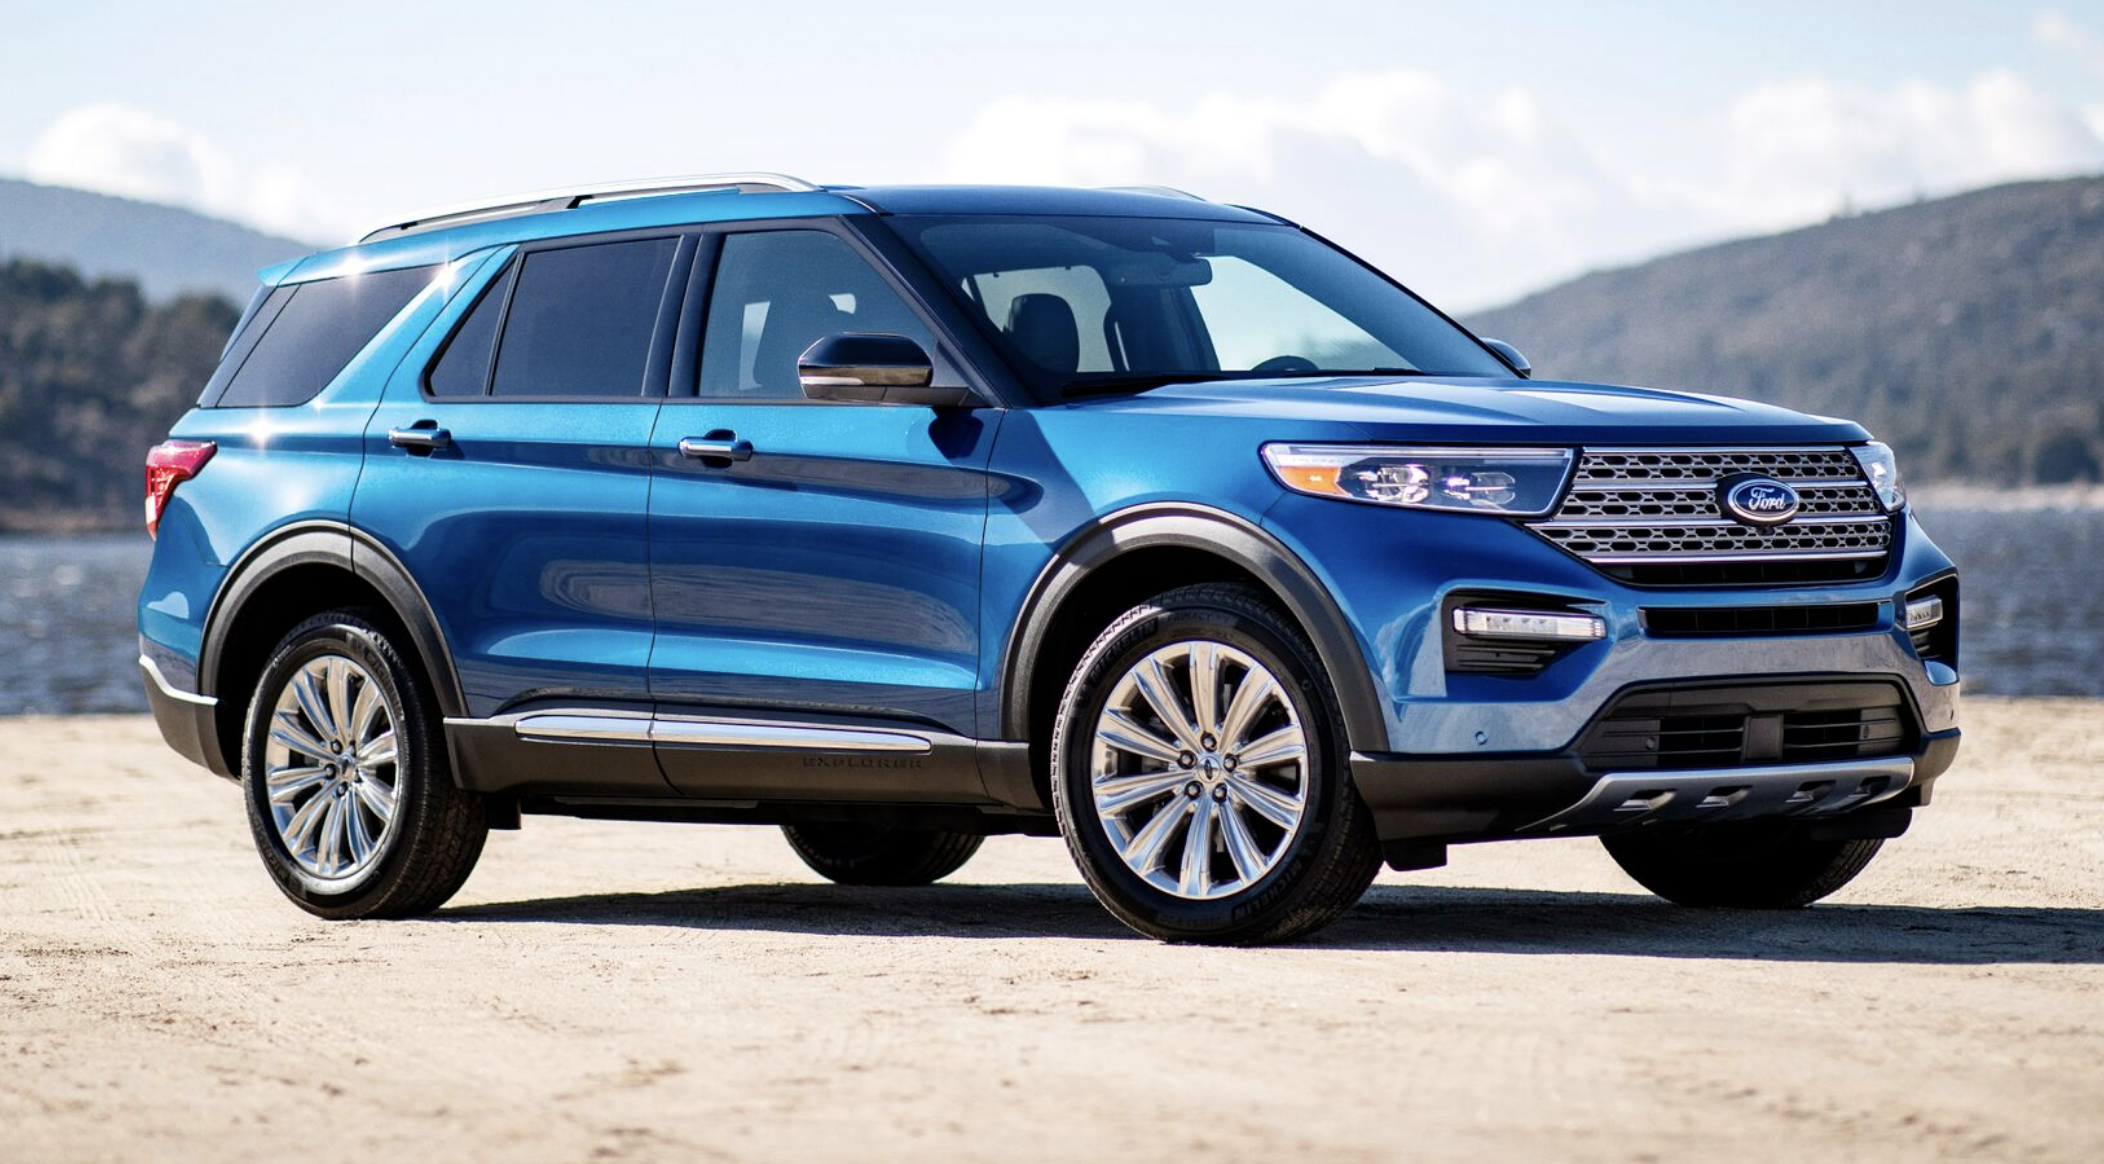 2019 Detroit Auto Show: 2020 Ford Explorer ST and Hybrid | The Daily Drive | Consumer Guide® The ...